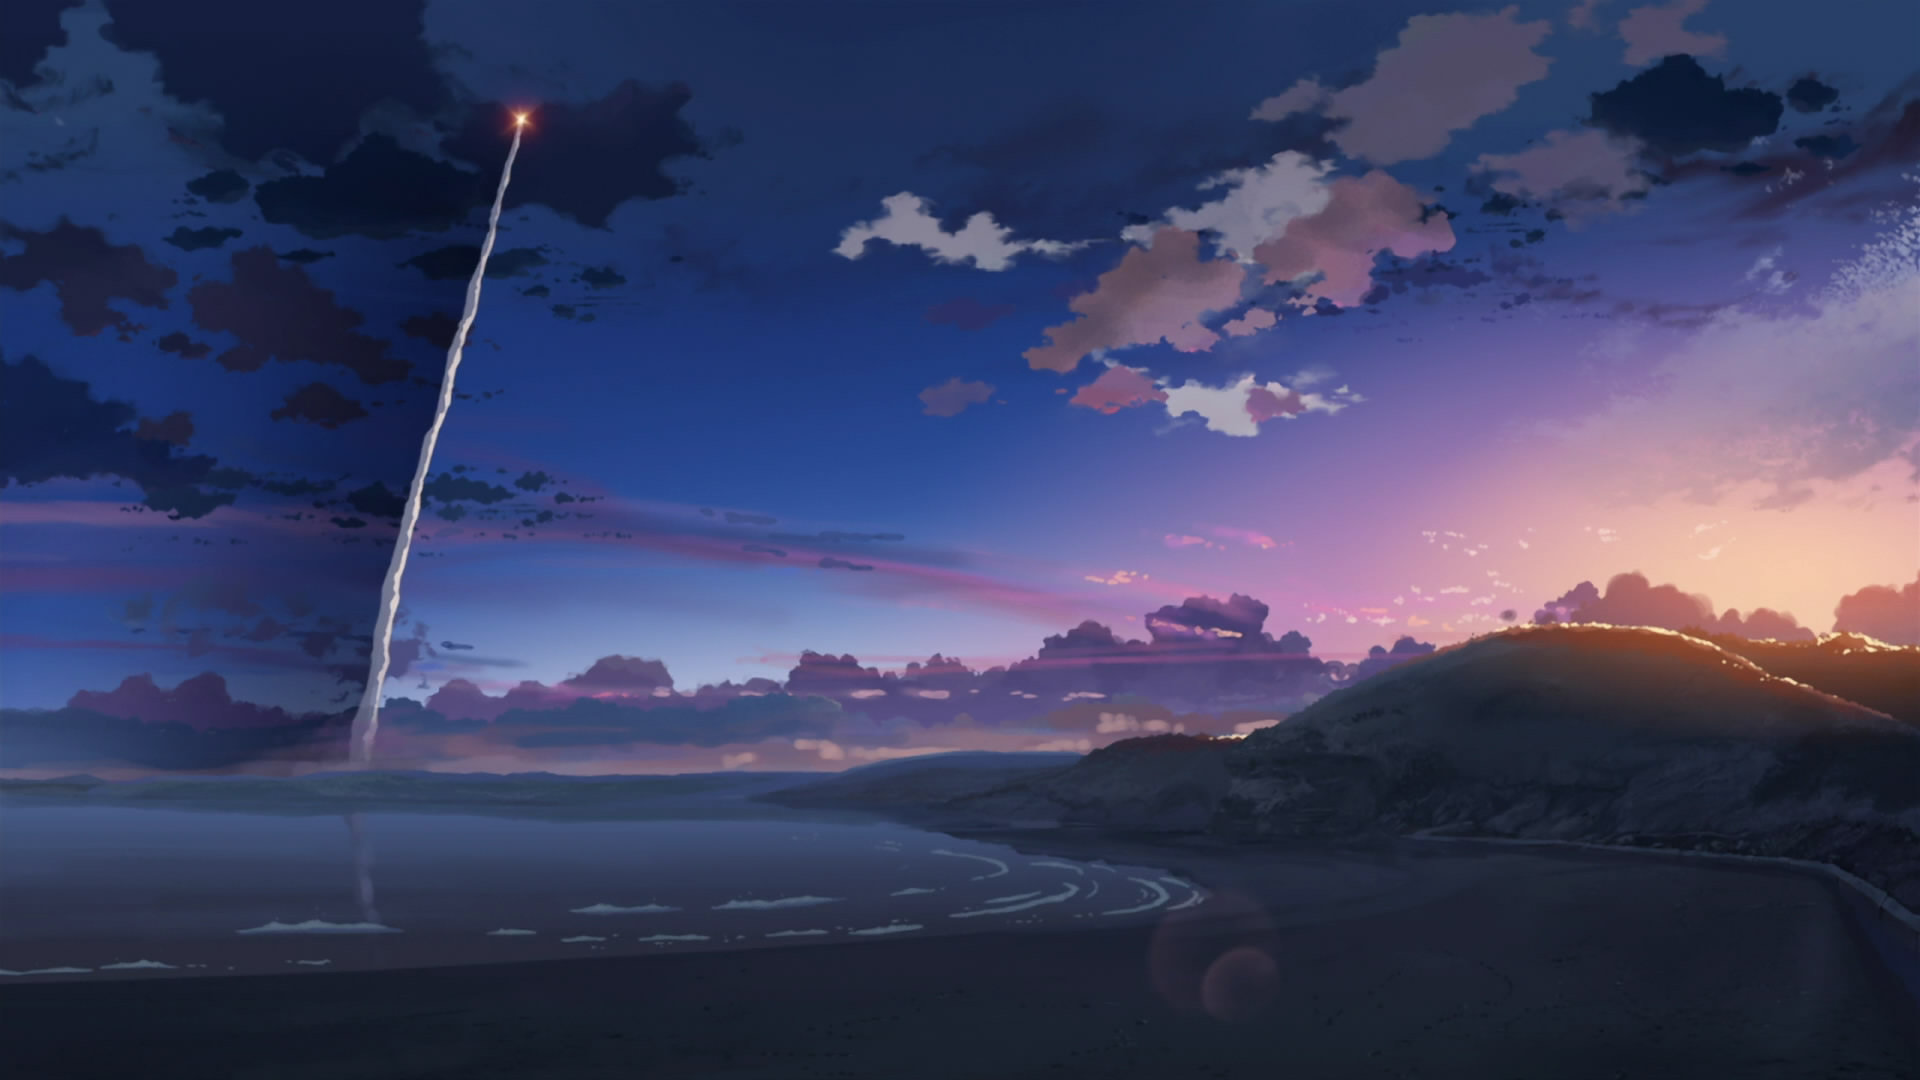 Download full hd 1920x1080 5 (cm) Centimeters Per Second computer wallpaper ID:90087 for free